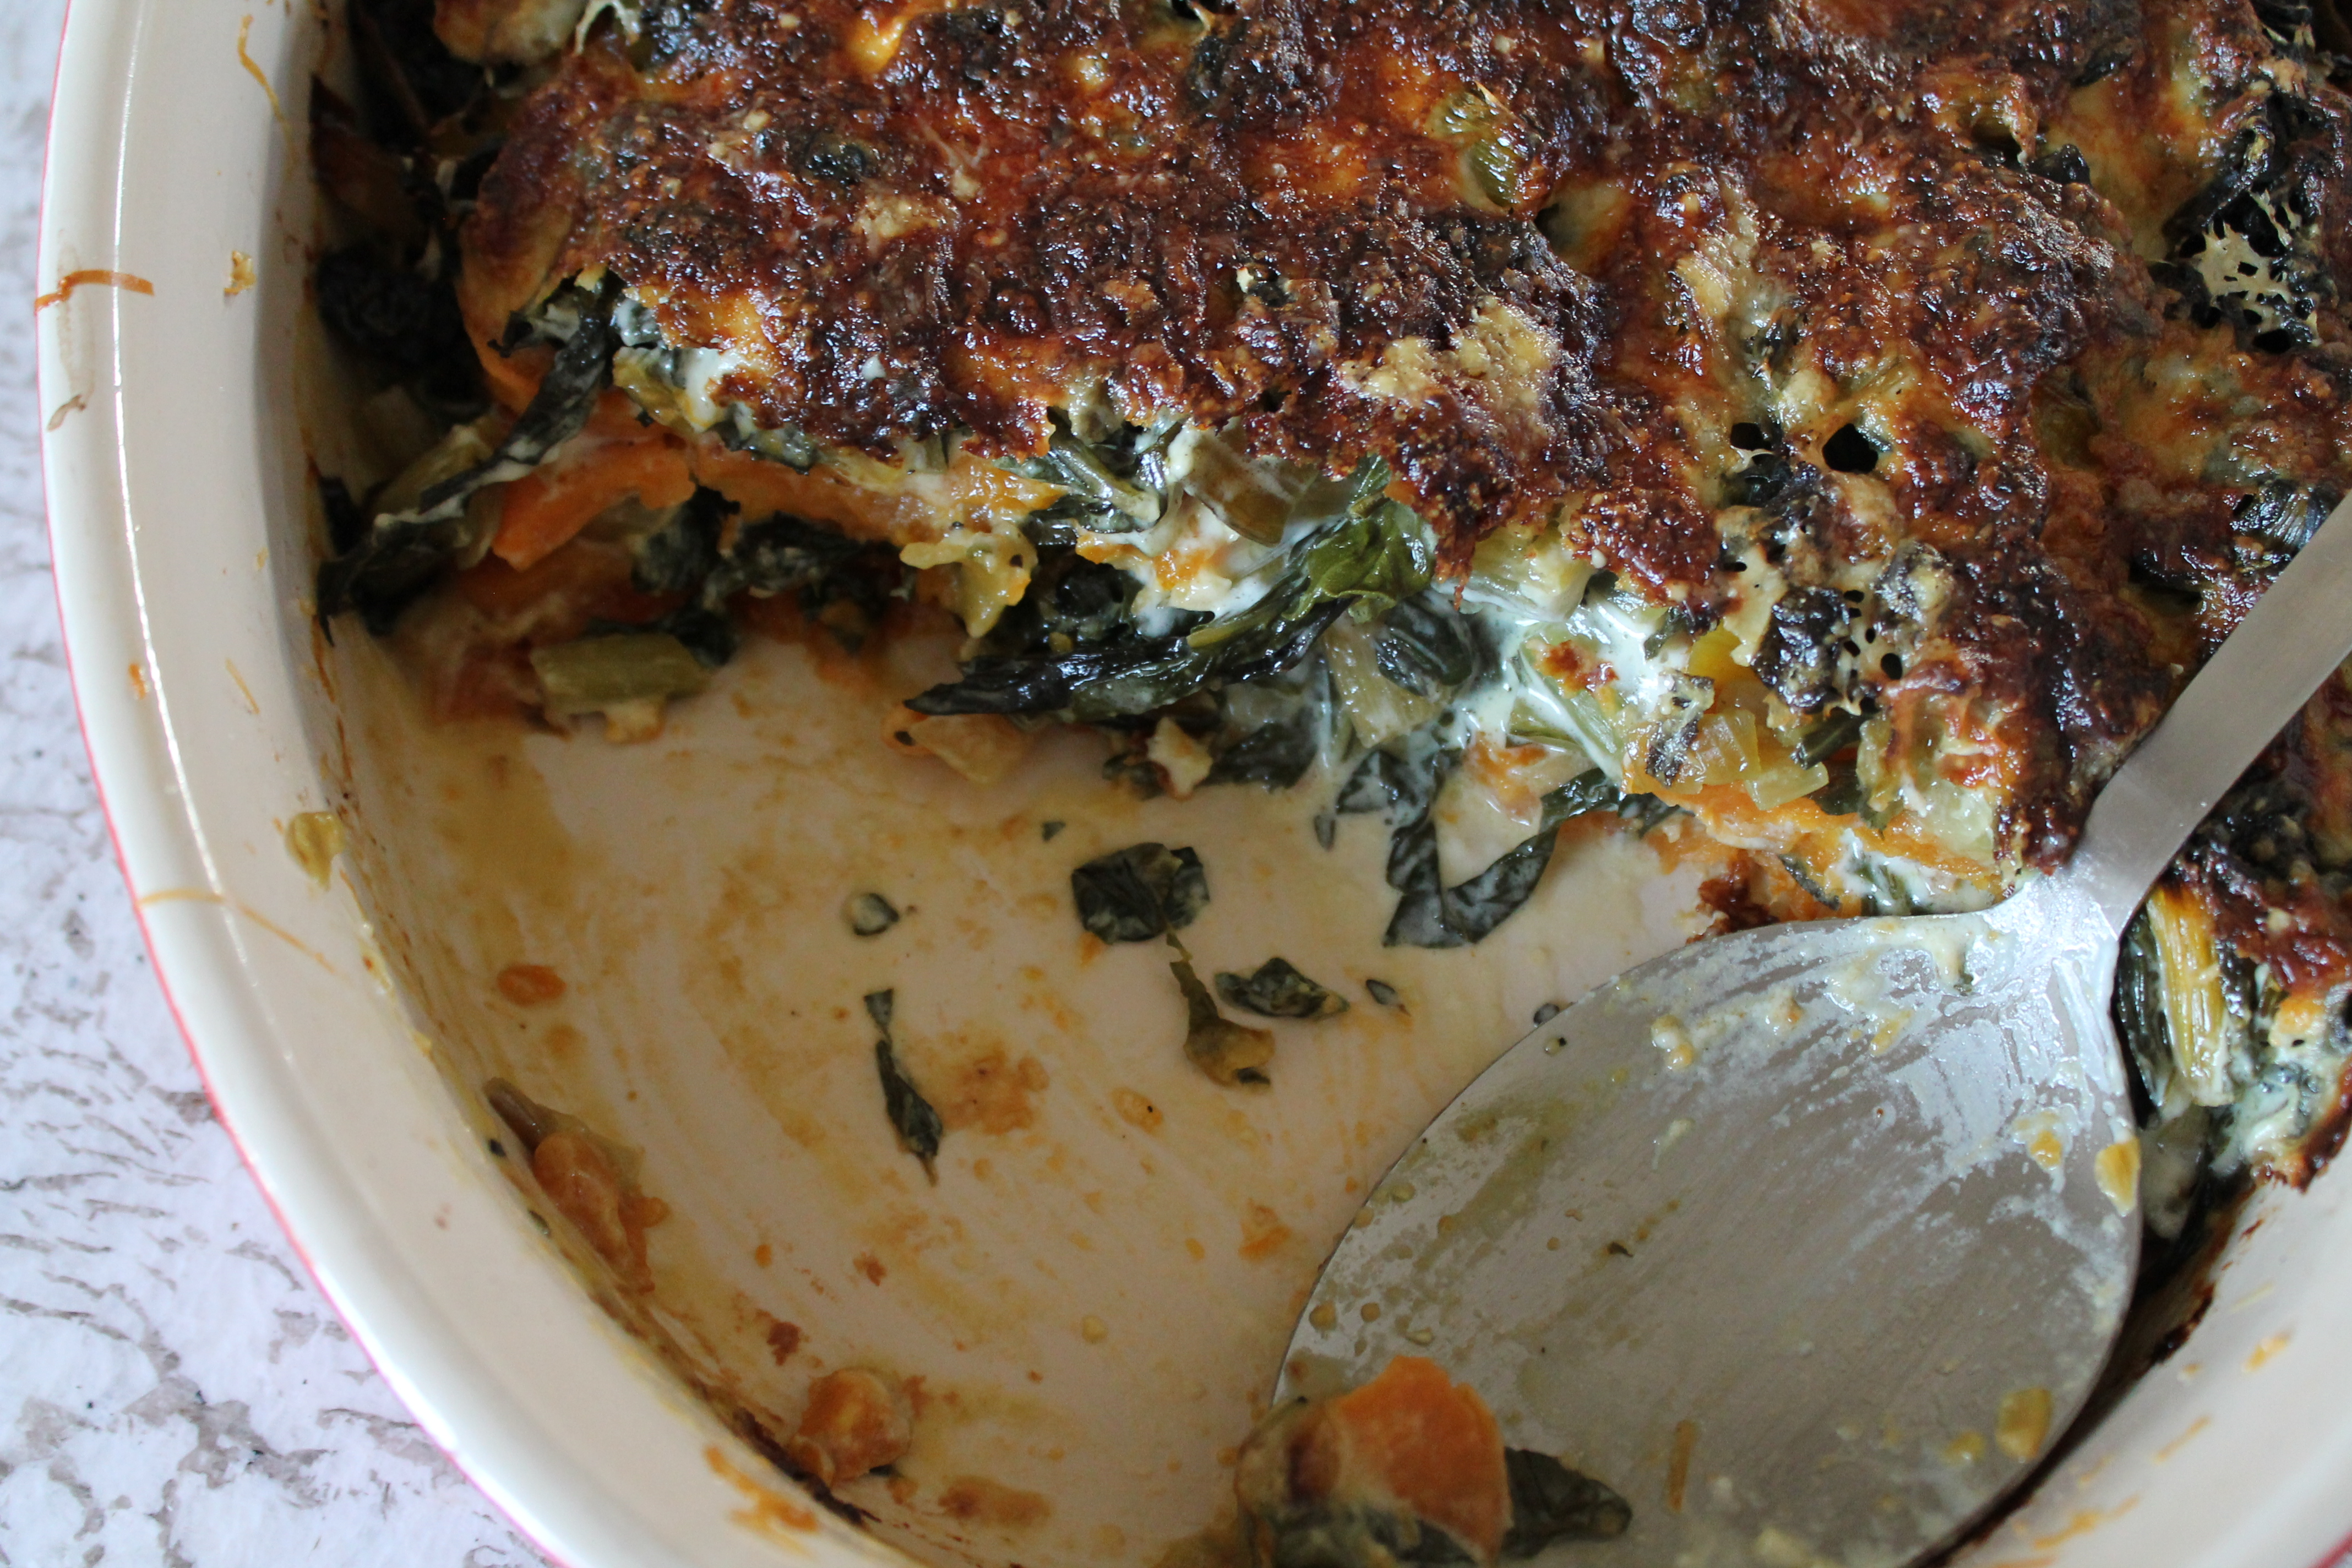 Sweet Potato and Swiss Chard Casserole